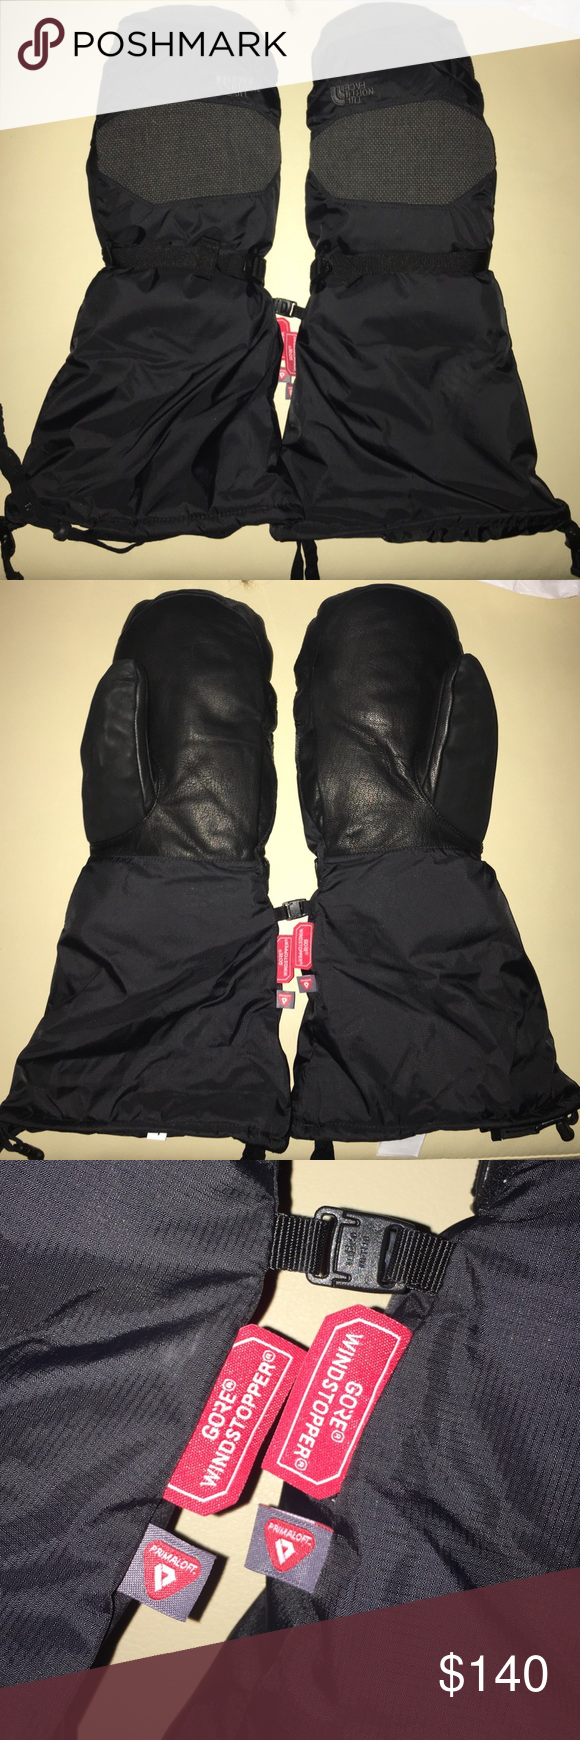 NorthFace Himalayan Mitten Men's size large. Like brand new. Waterproof shell and leather palms. Insulated and filled with goose-down. Will keep your hands super warms! North Face Accessories Gloves